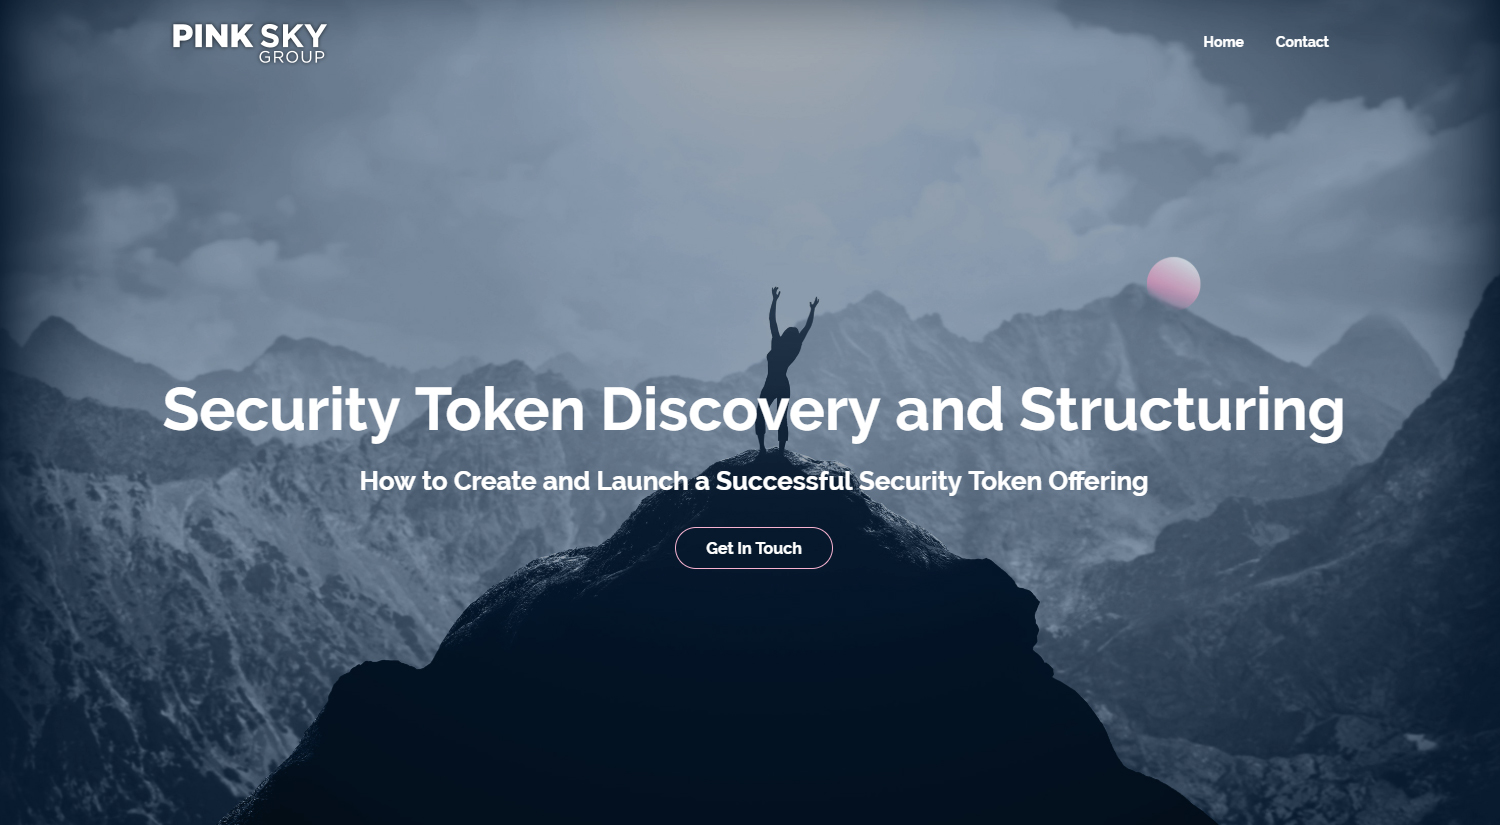 Pink Sky Group – Security Token Discovery